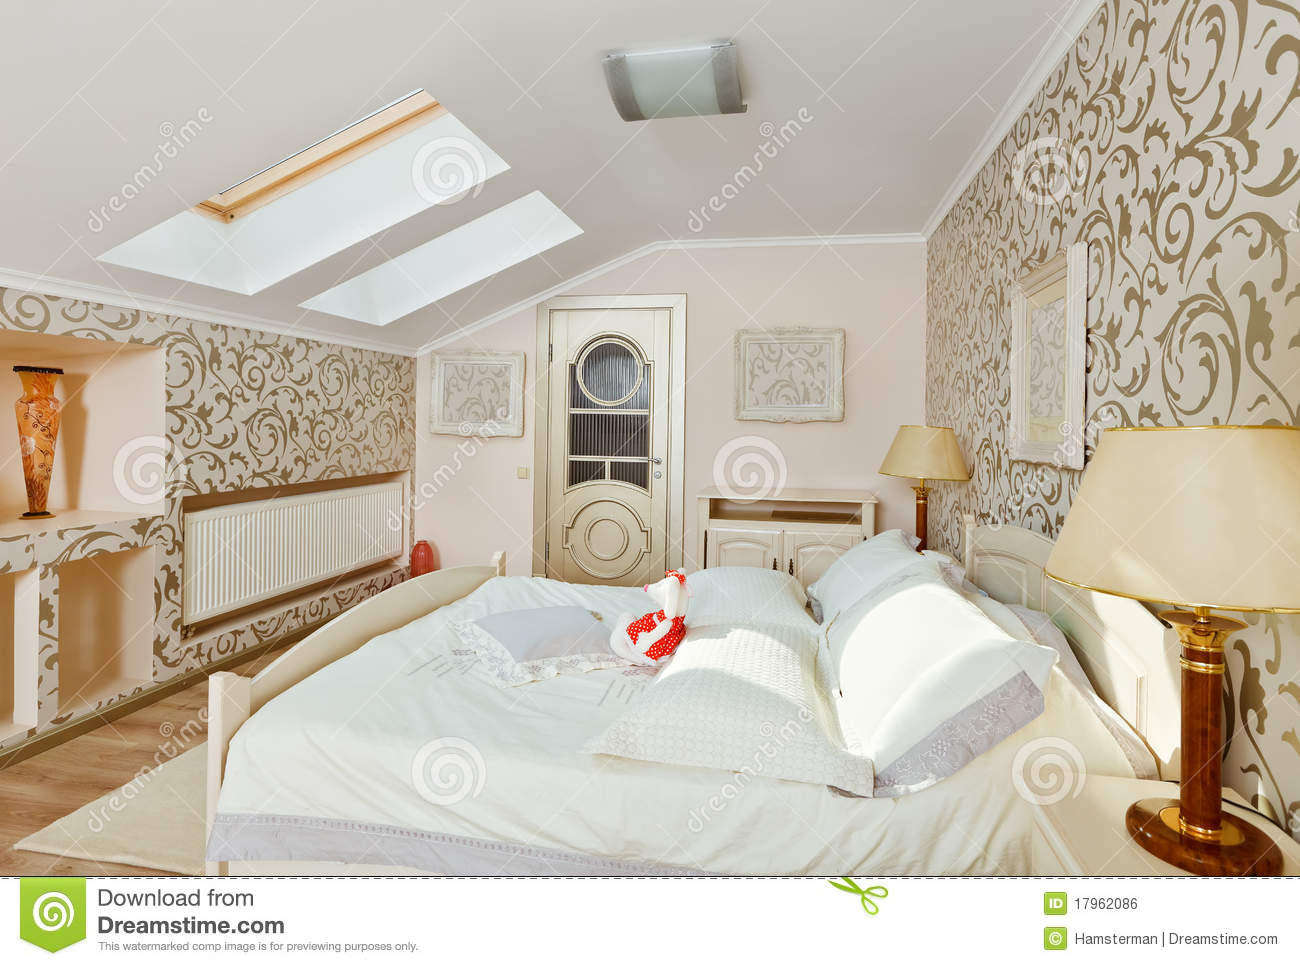 Modern Bedroom Interior In Light Beige Colors Royalty Free Stock Image ...